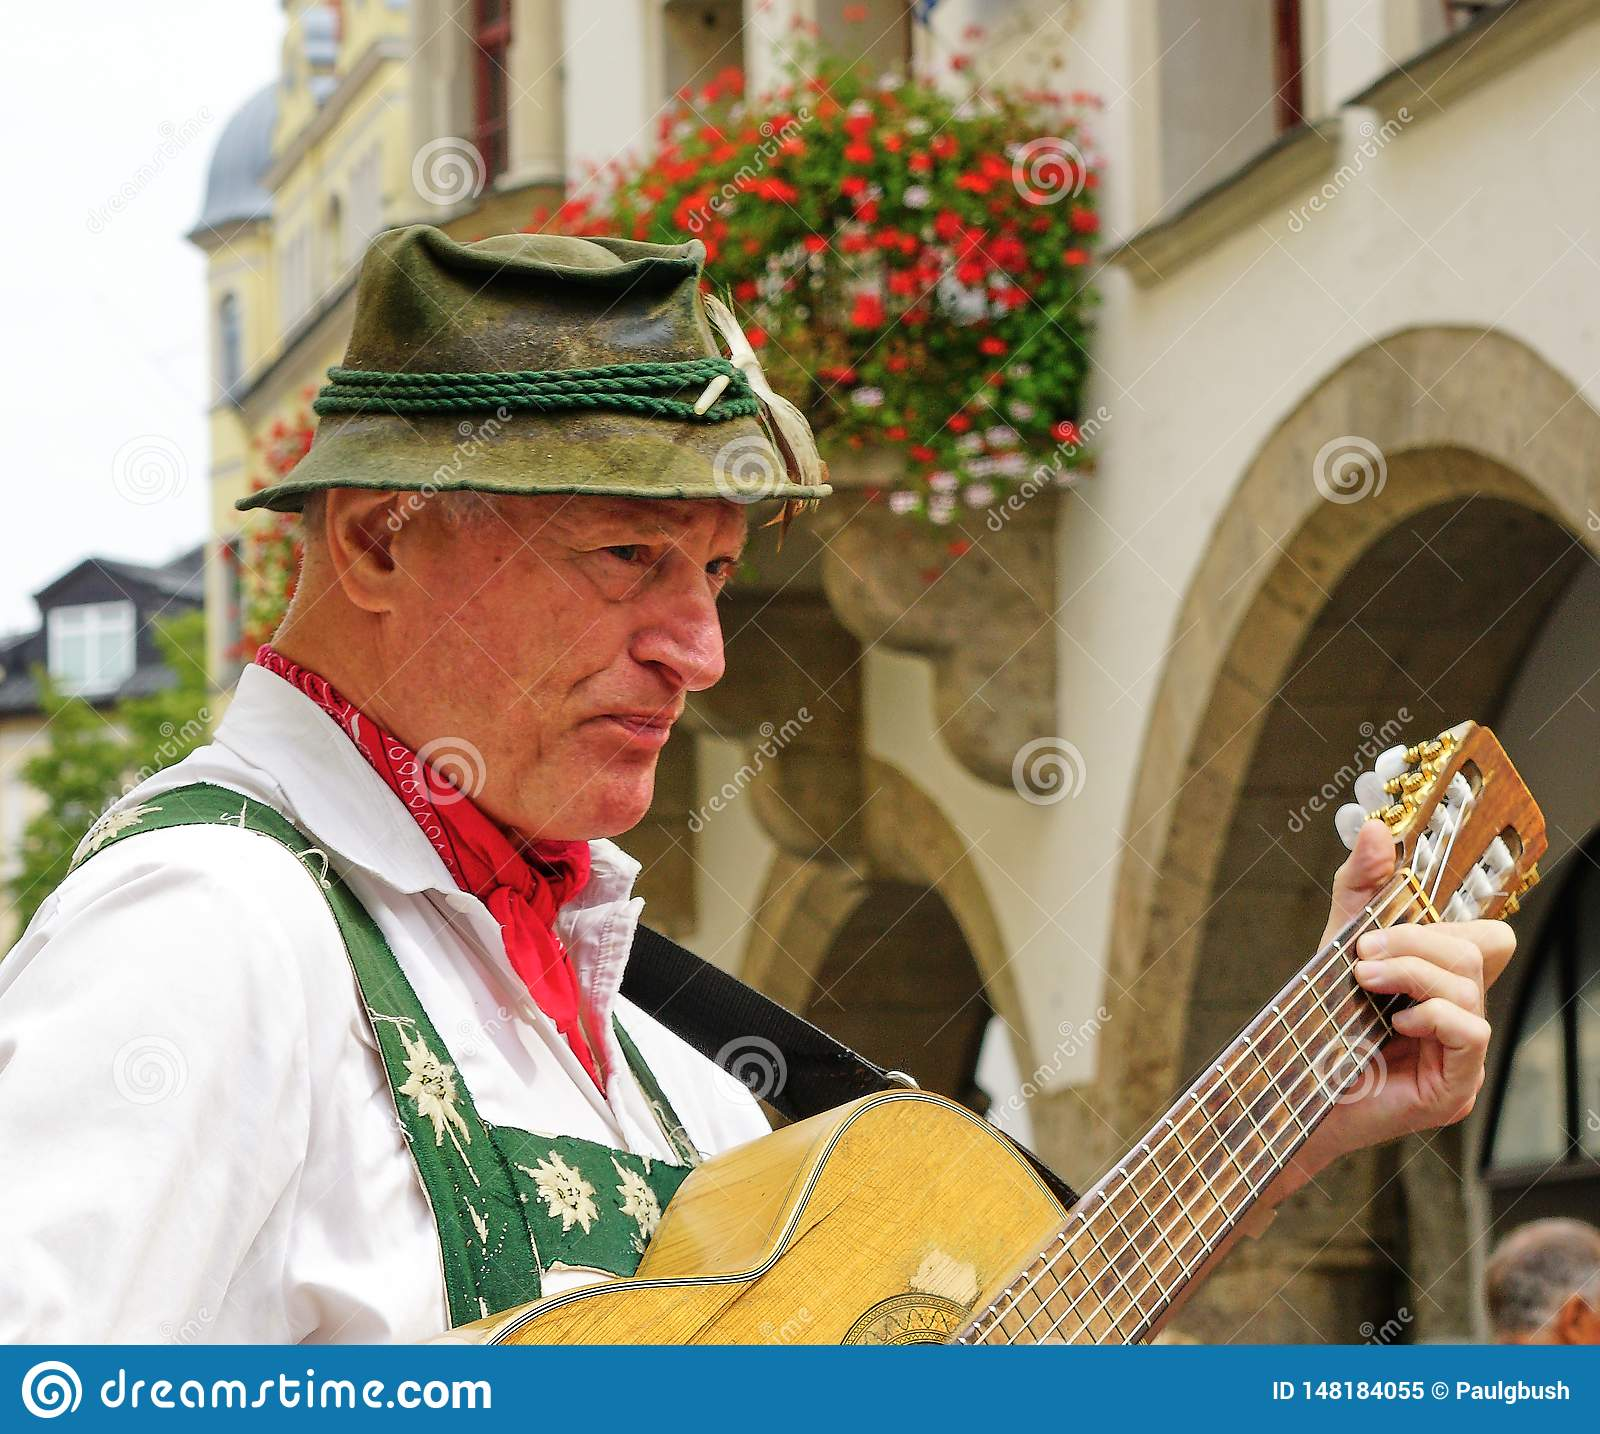 Male Street Performer in Traditional Bavarian Clothing